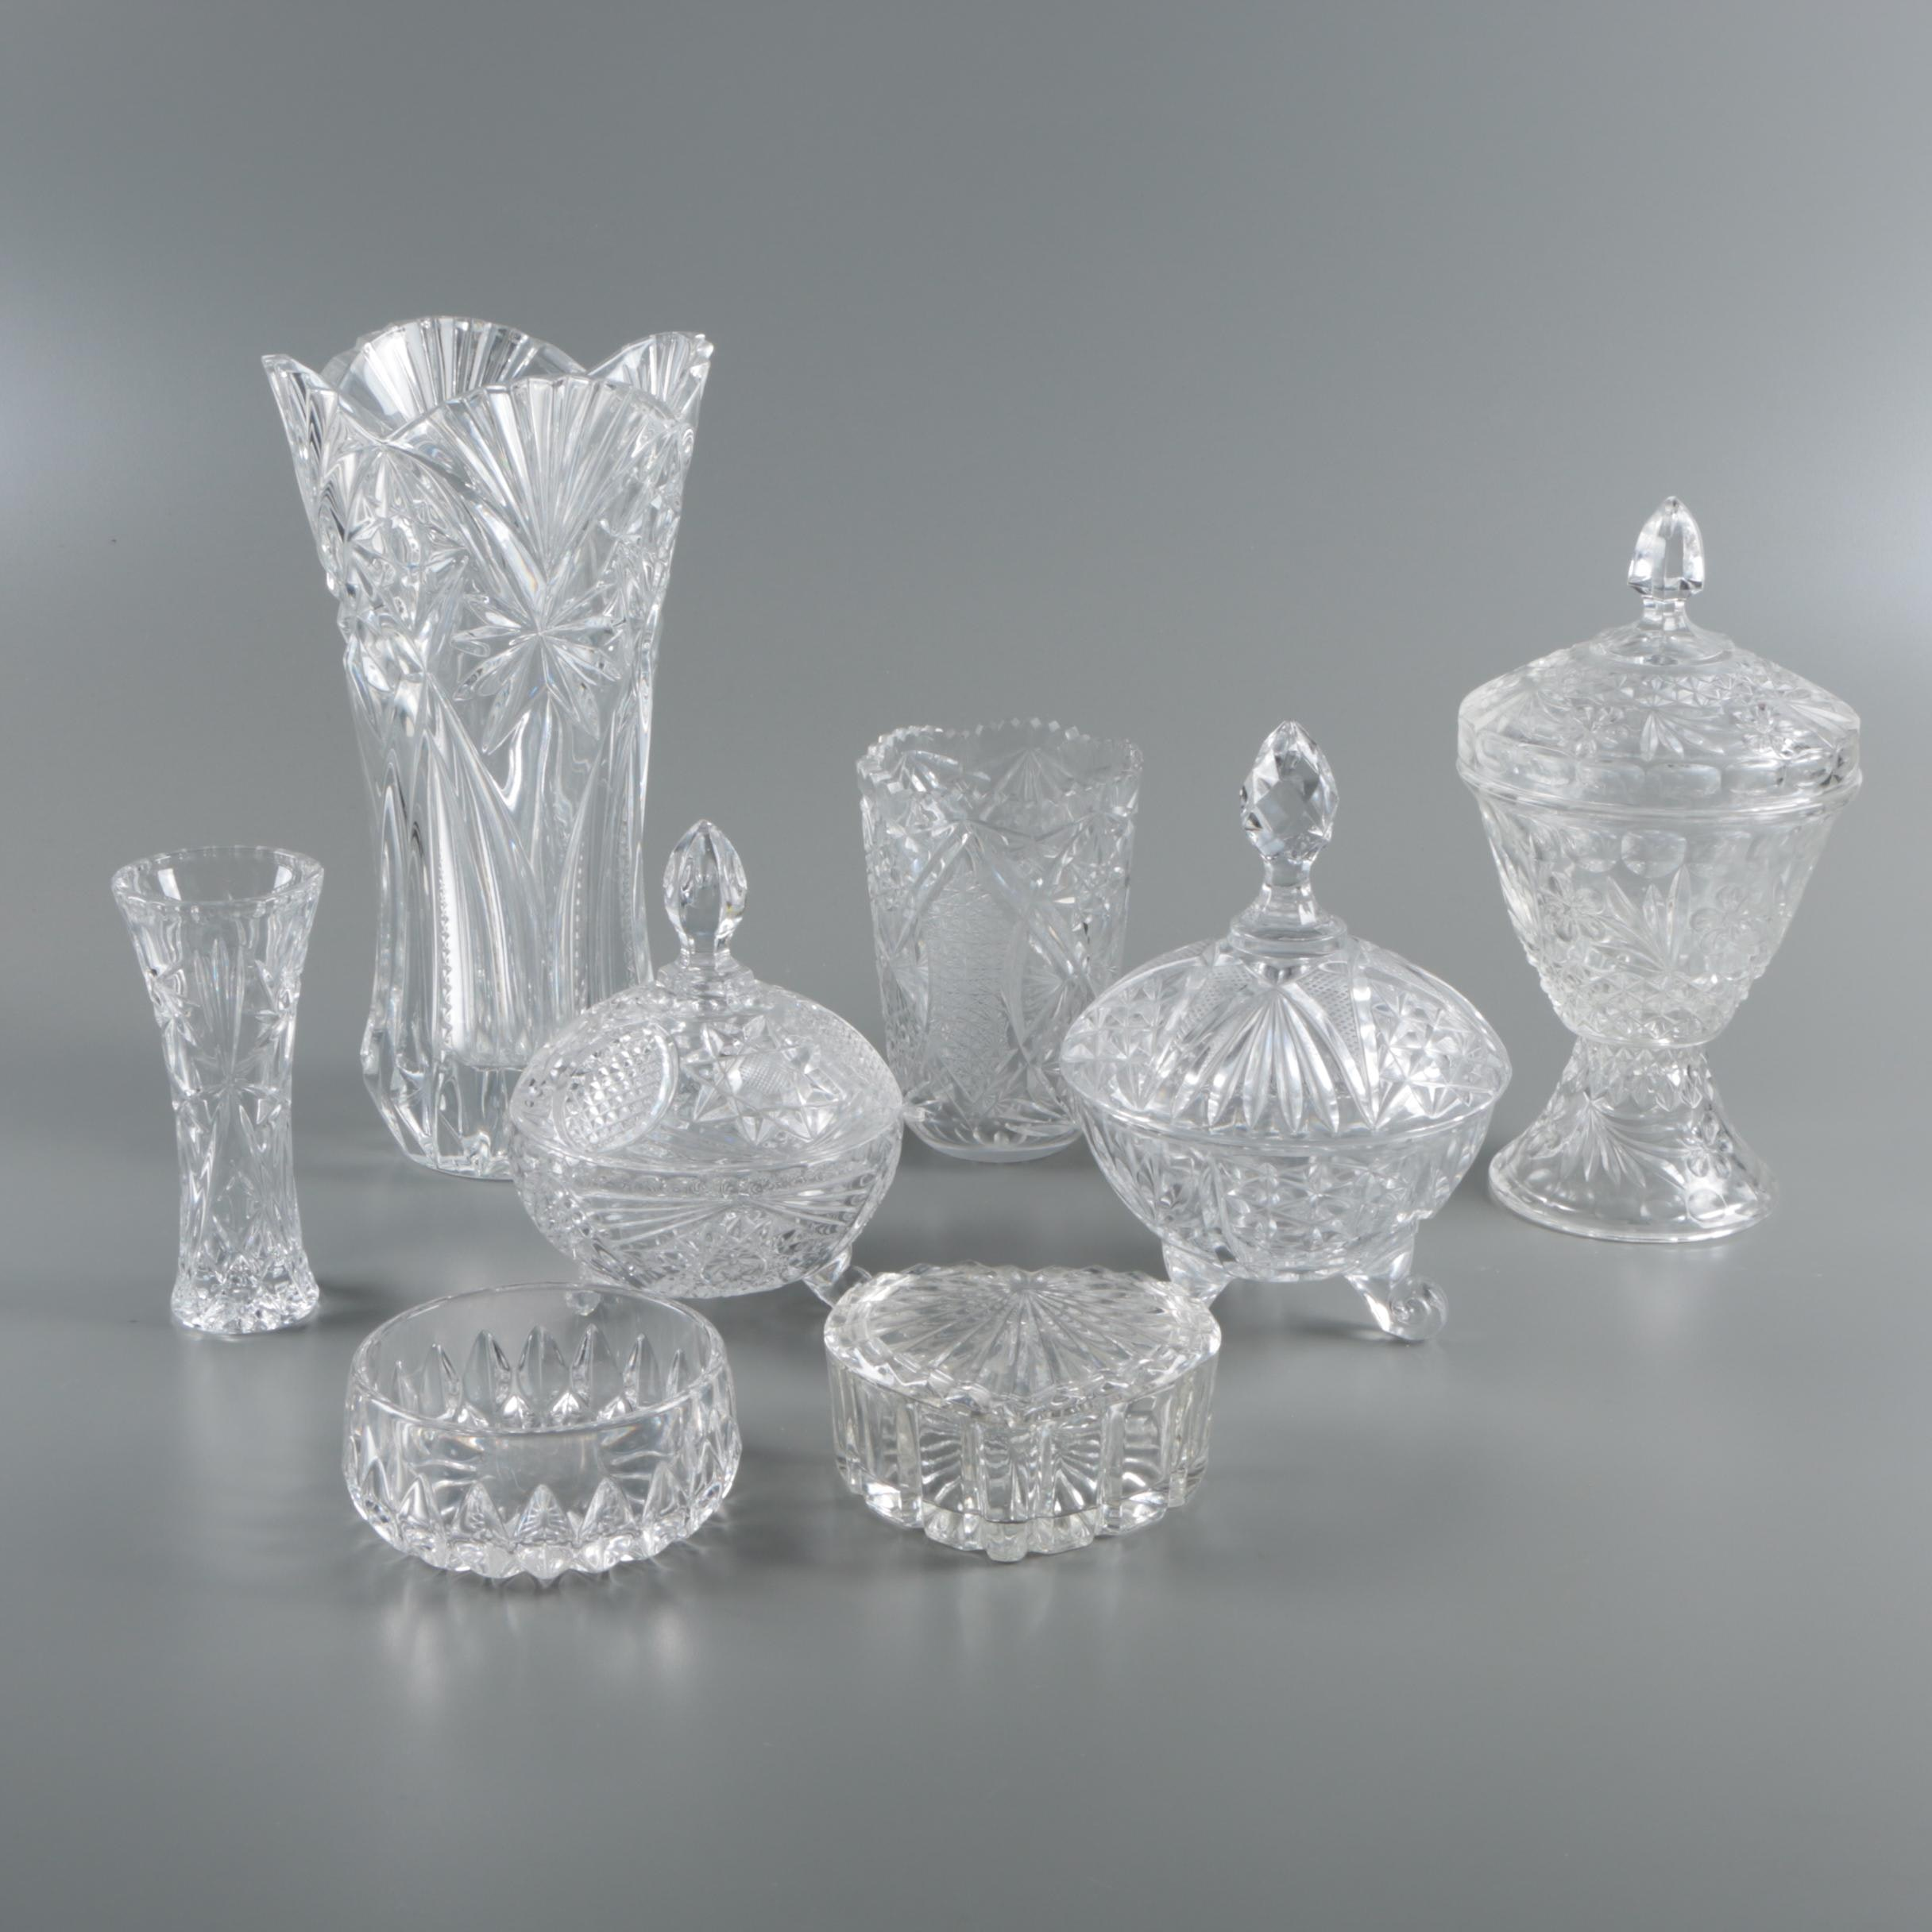 Cut Glass Candy Dishes and Vases